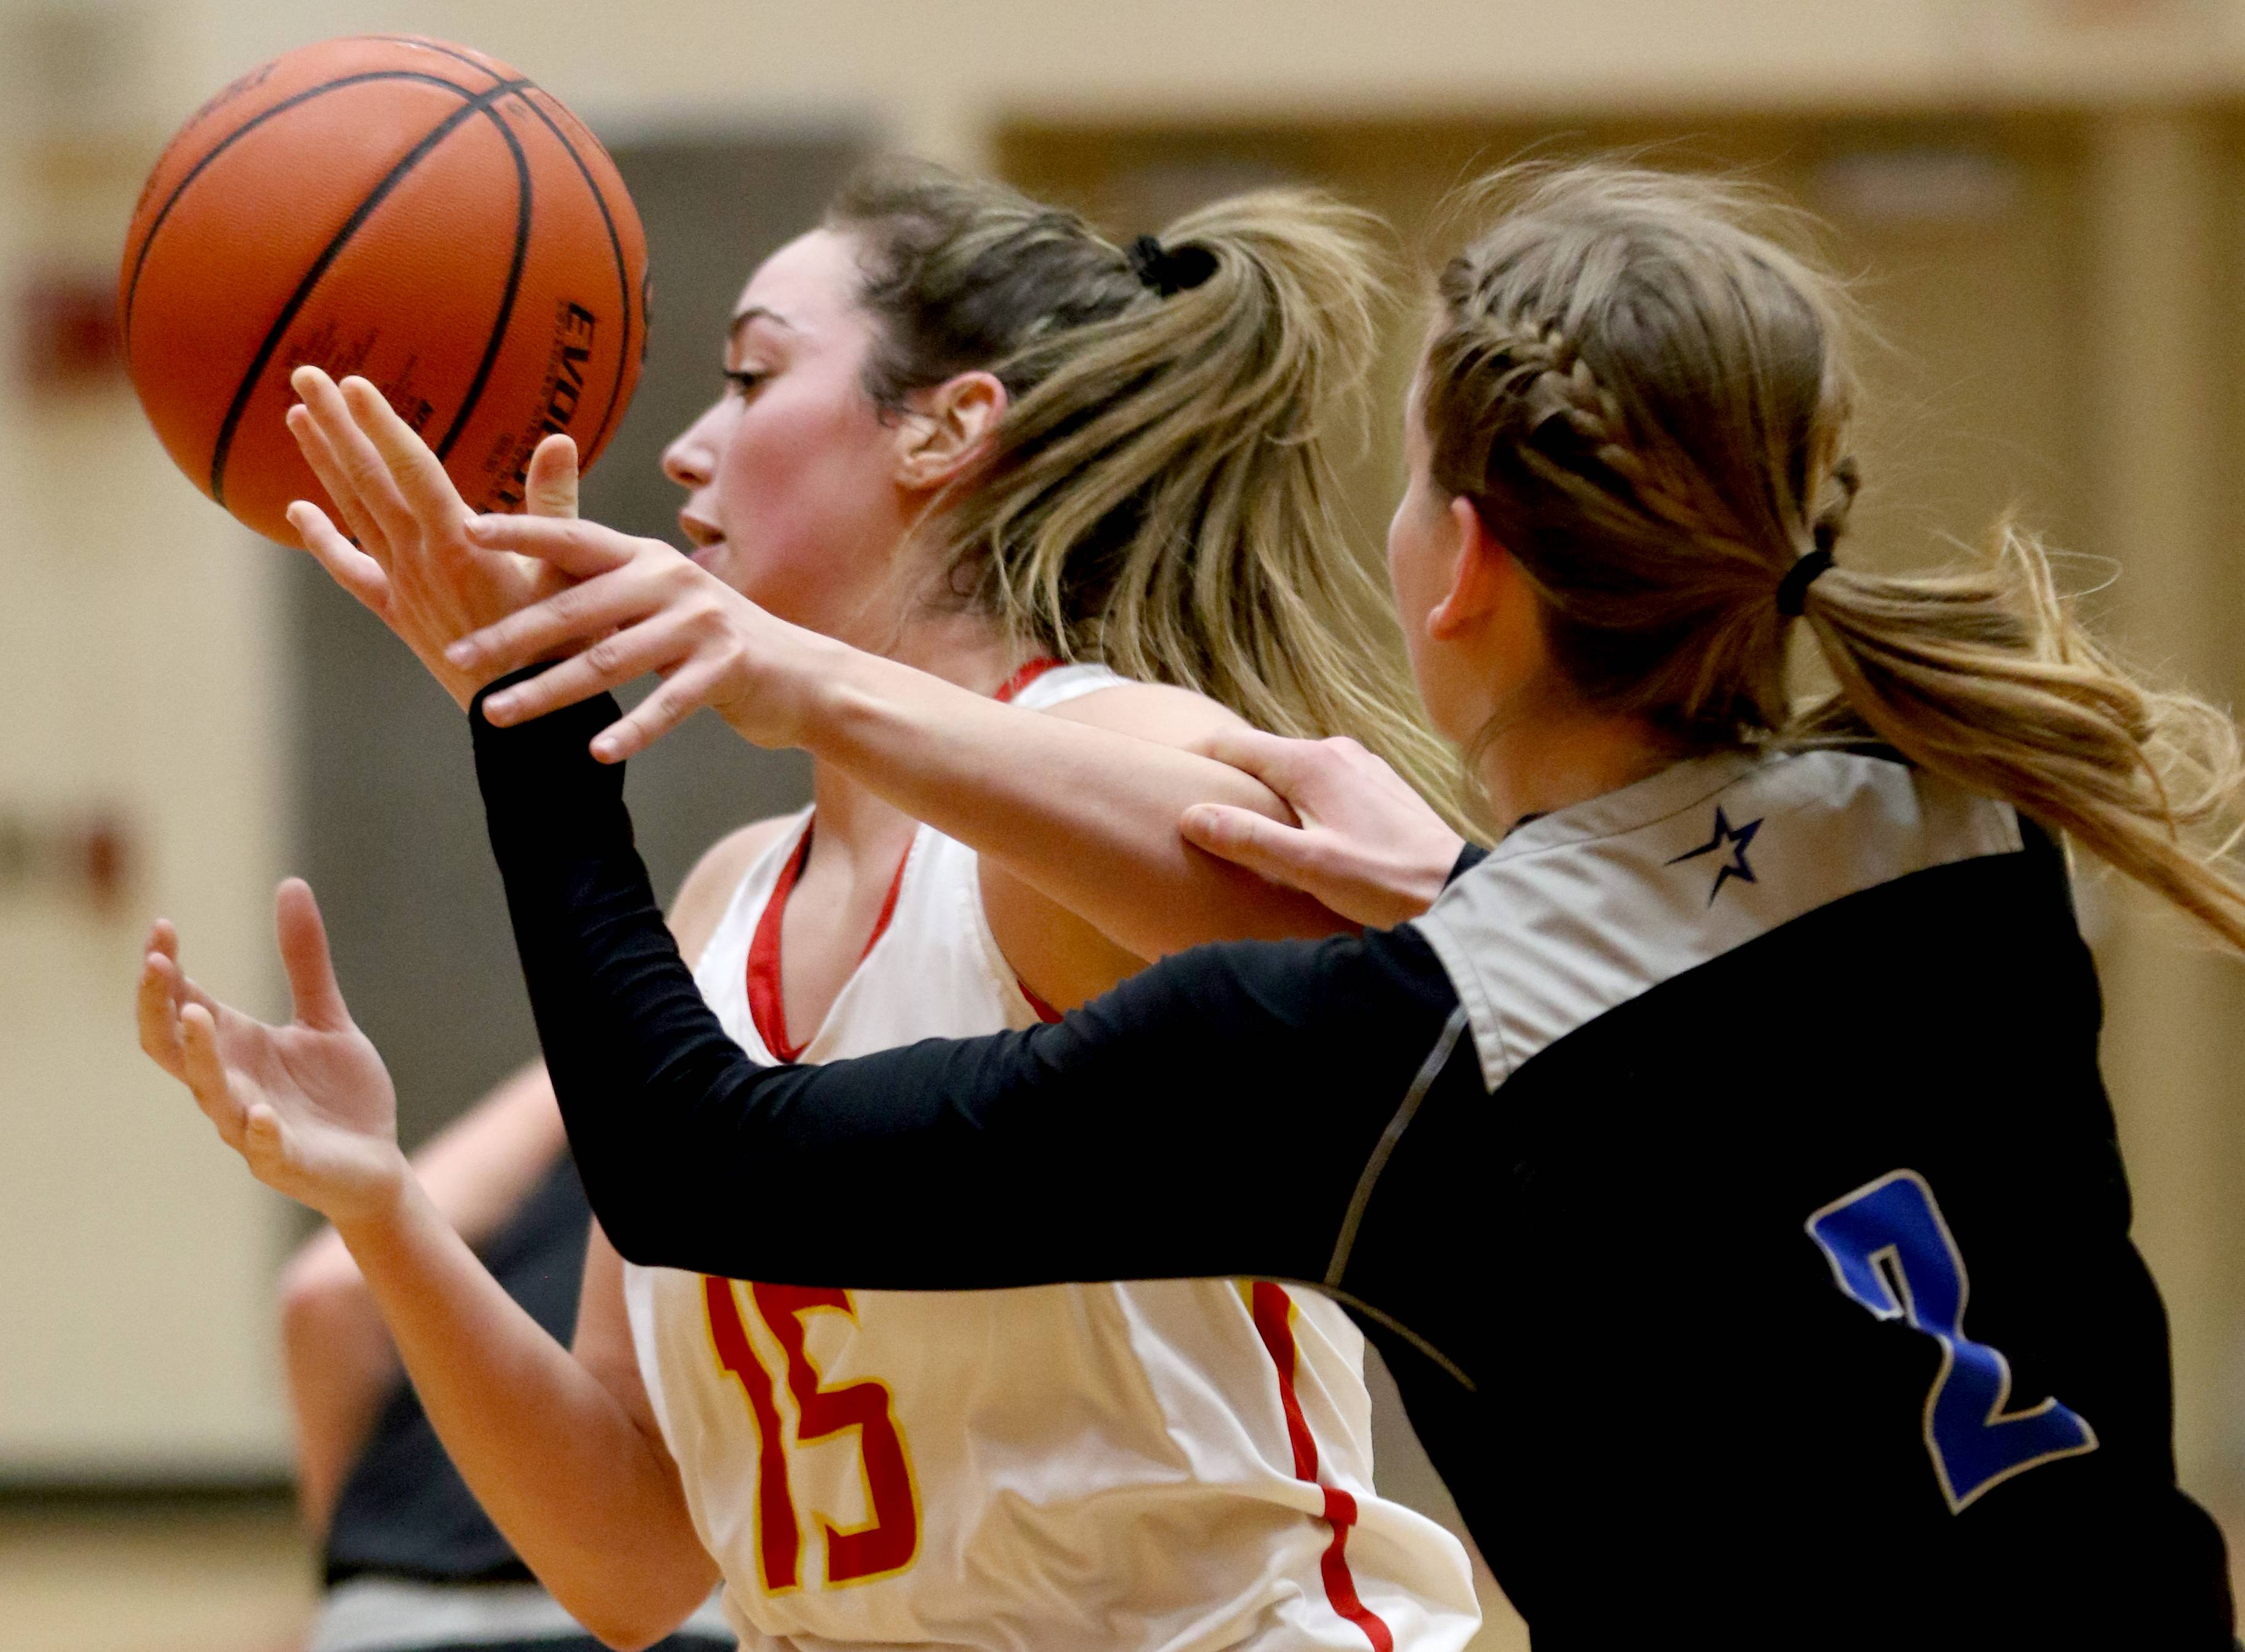 Batavia's Ava Sergio, left, loses control of the ball under pressure from St. Charles North's Emma Ludwig during varsity girls basketball at Batavia Thursday night.